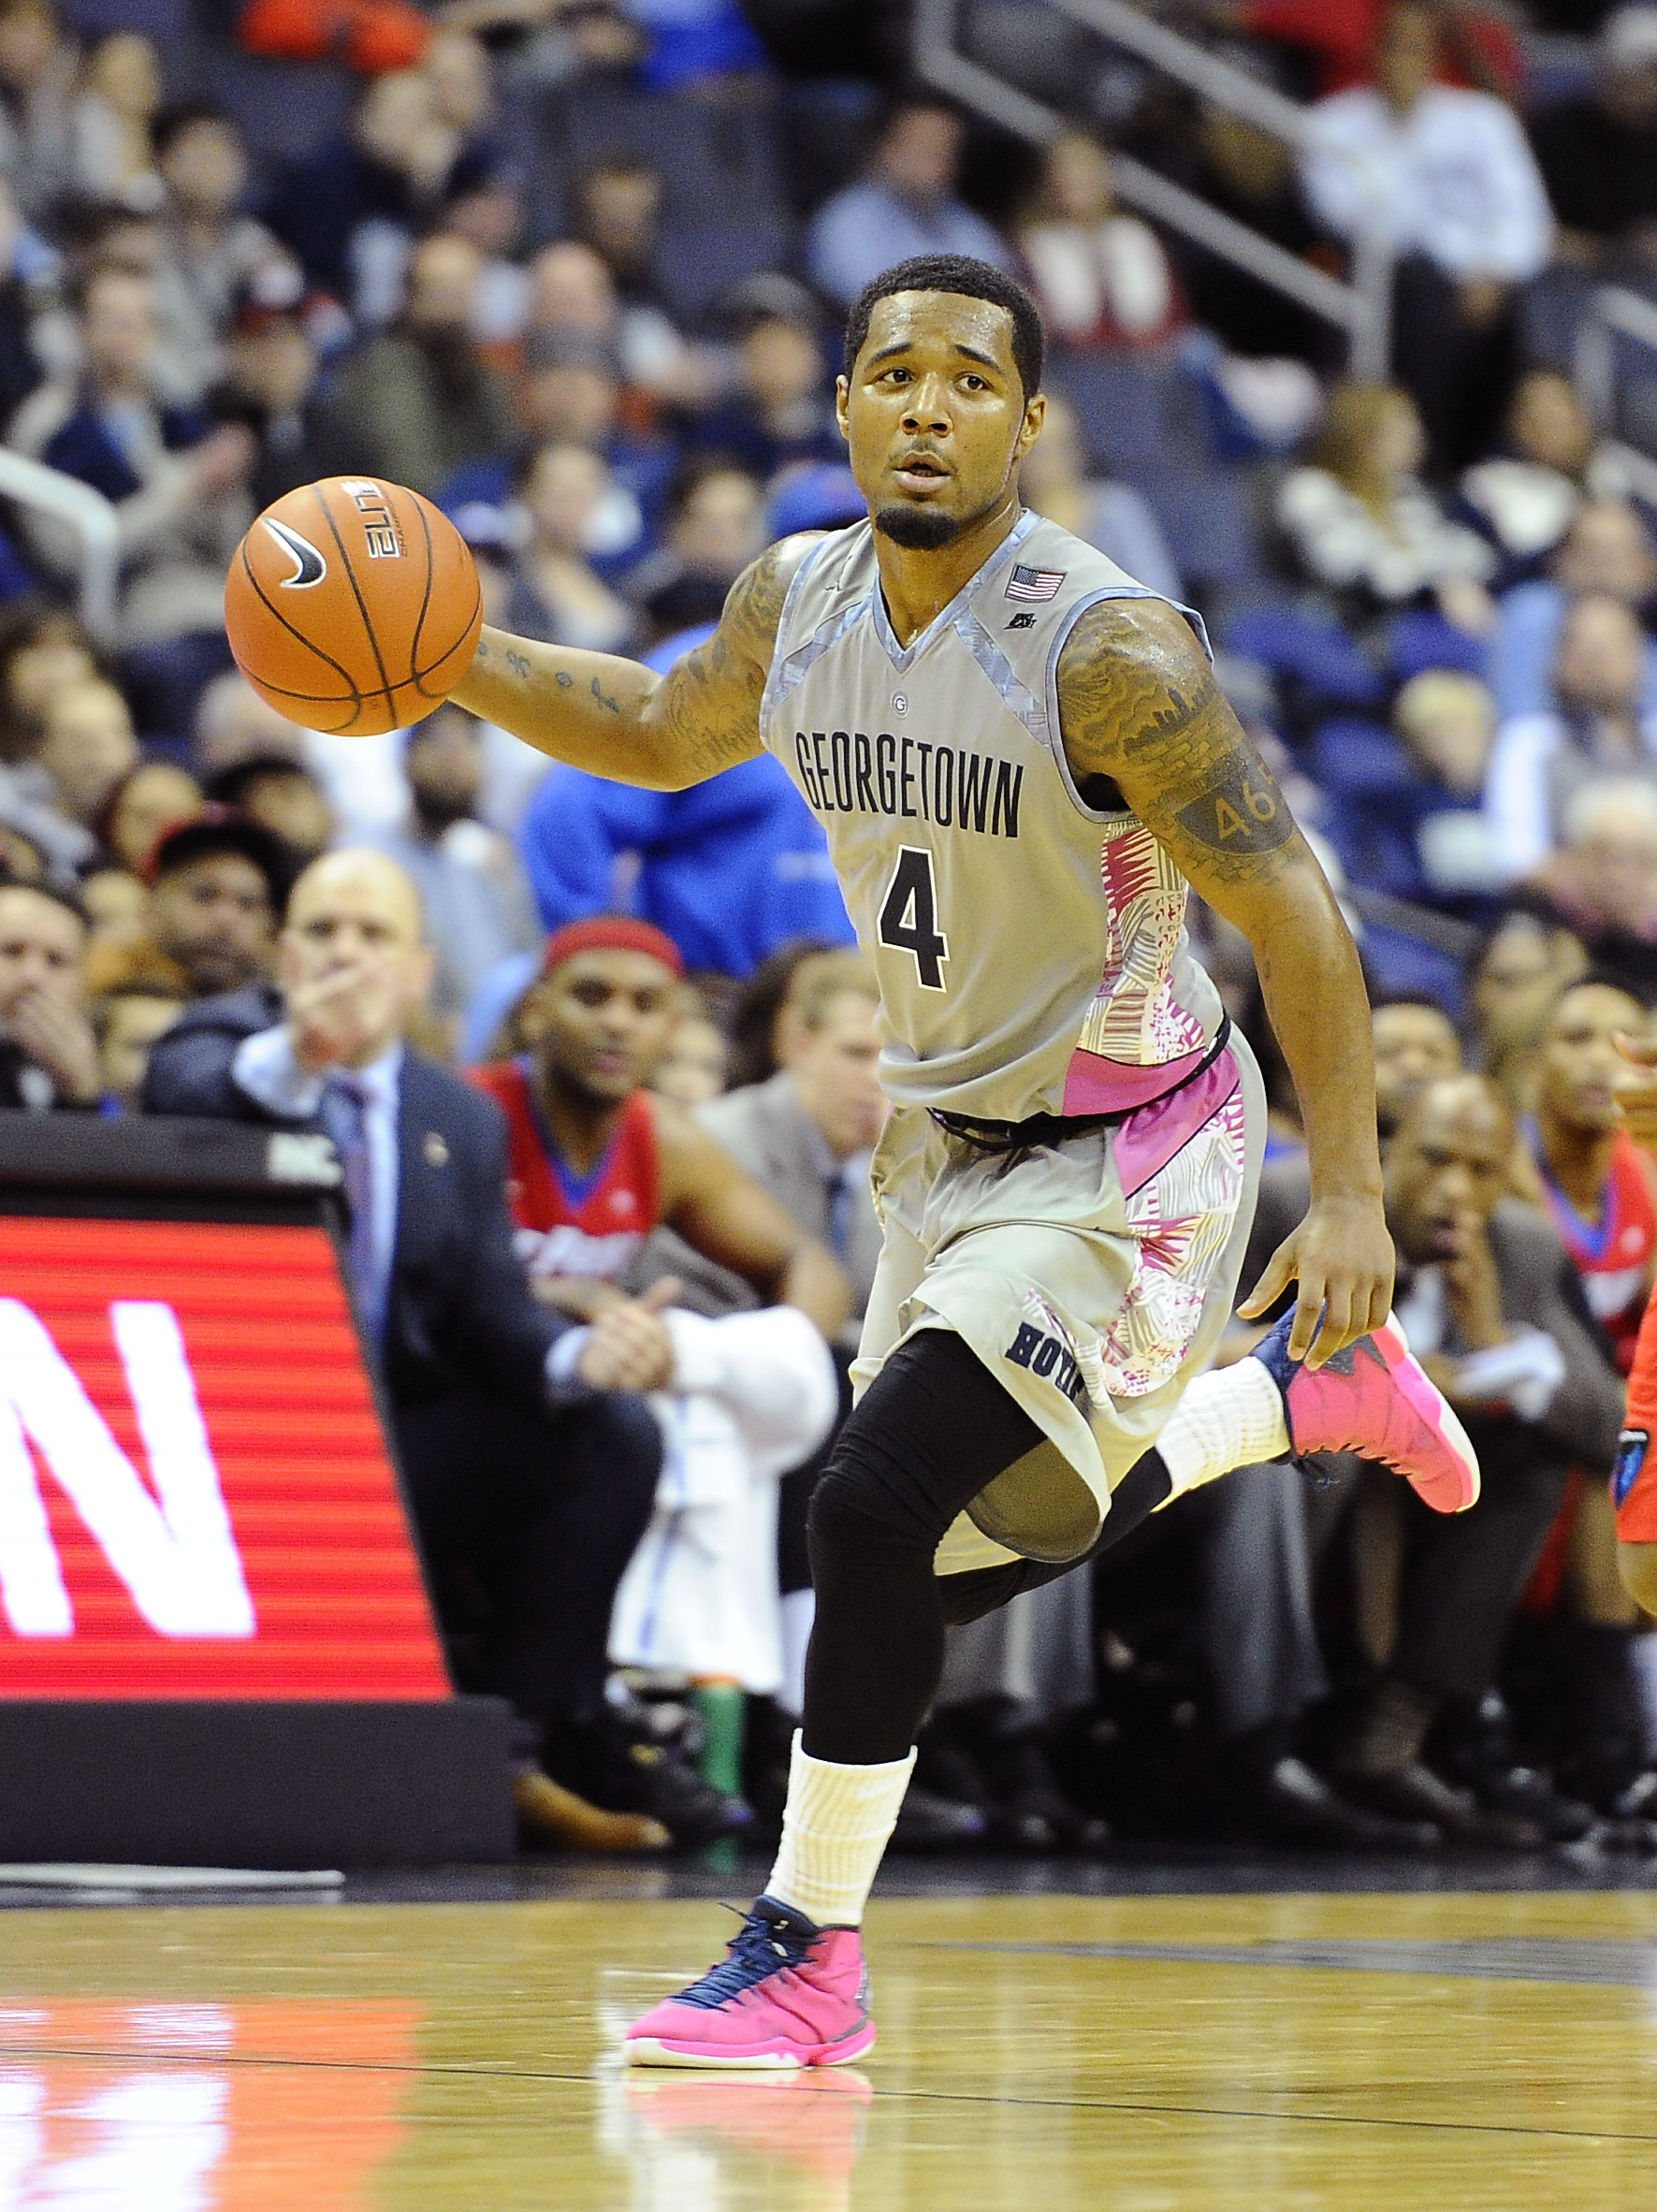 Georgetown University senior men's basketball player D'Vauntes Smith-Rivera was selected to the BIG EAST Weekly Honor Roll on Monday.  It is the second-straight appearance on the Weekly Honor Roll and his third this season.